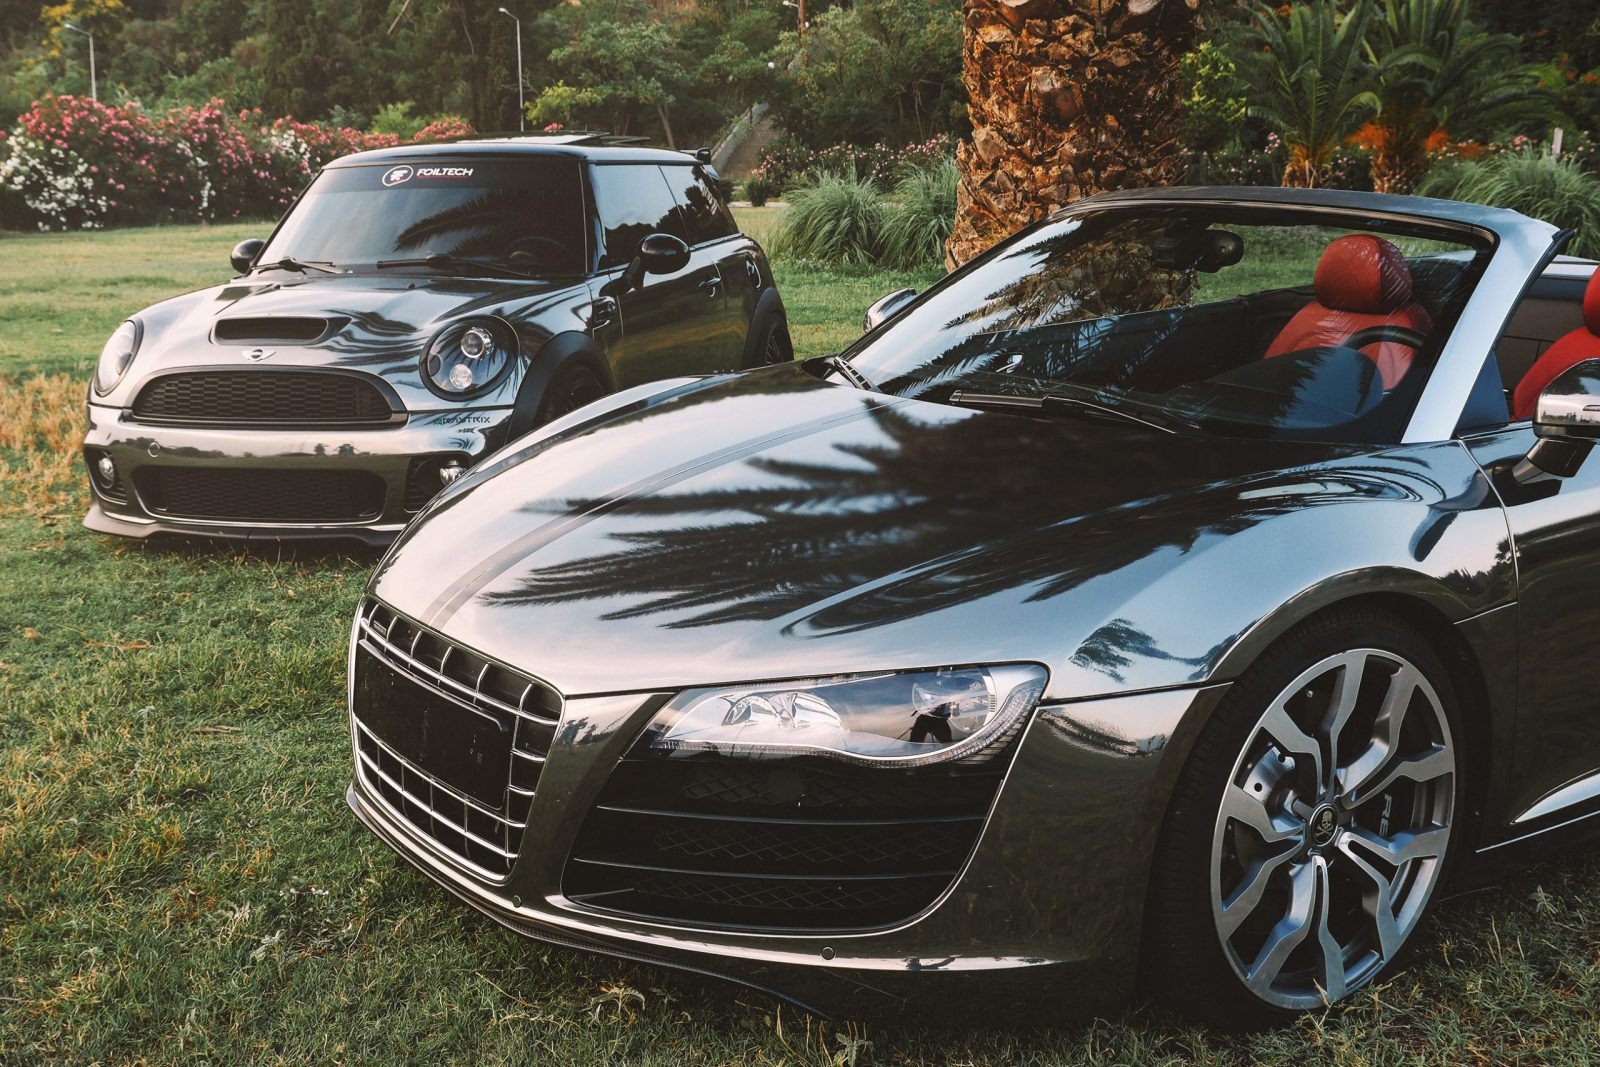 Black Chrome Audi R8 & Mini Cooper by Folitech